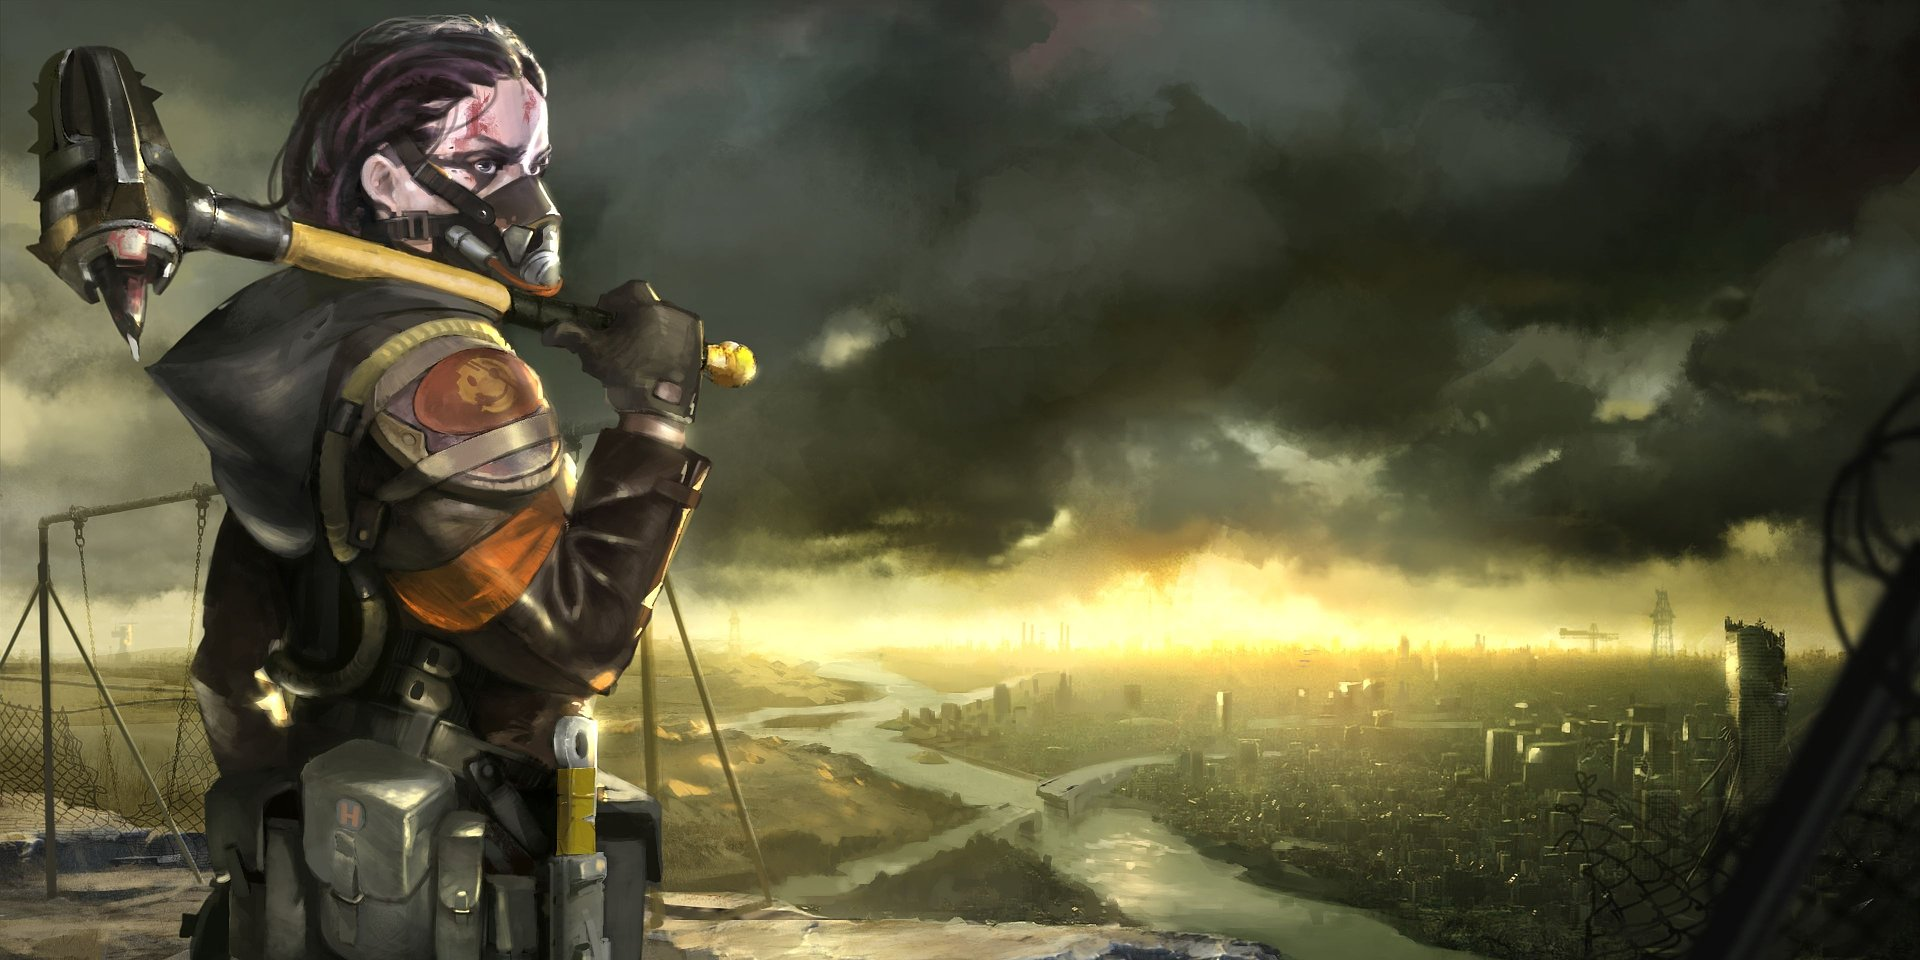 Dustwind - The Last Resort is coming to consoles on 15th September 2021!